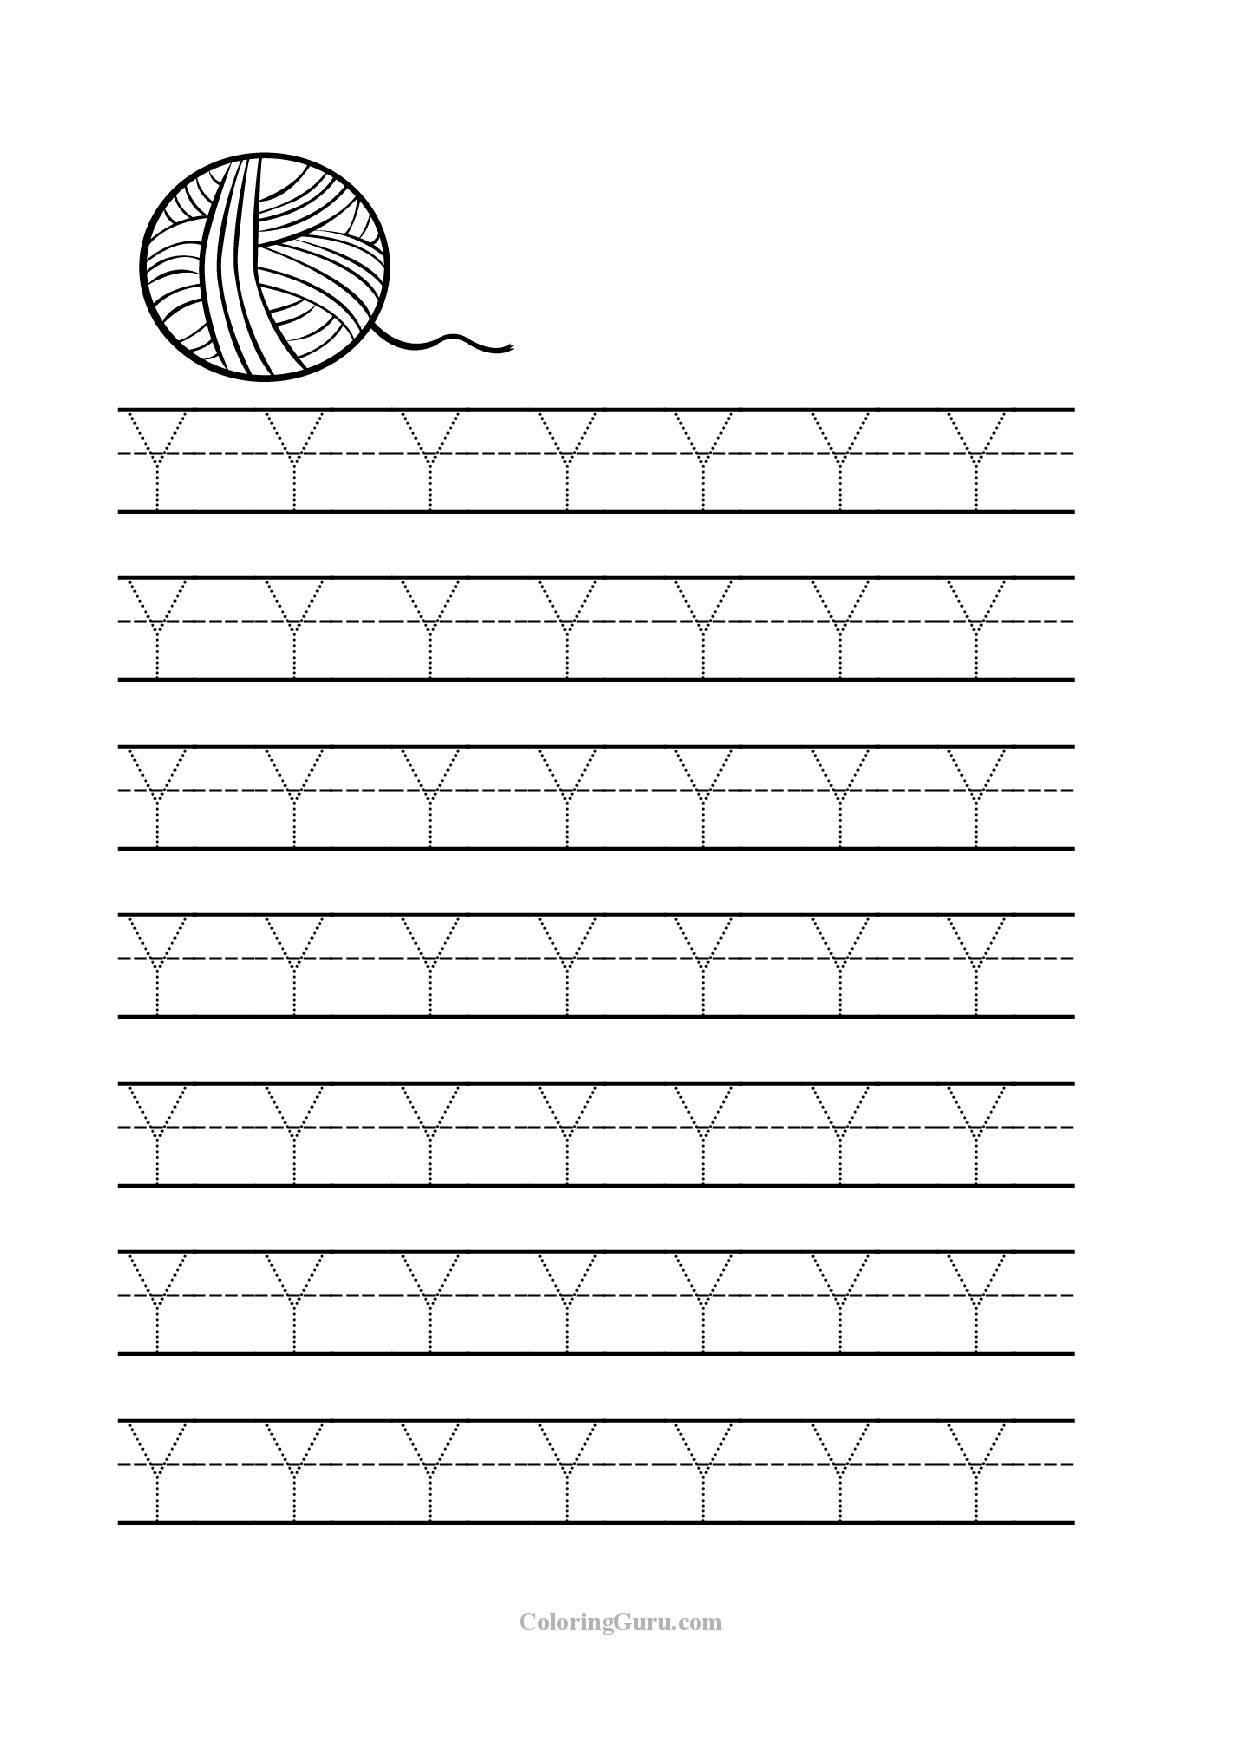 Tracing Letter Y Worksheets For Preschool 1 240 1 754